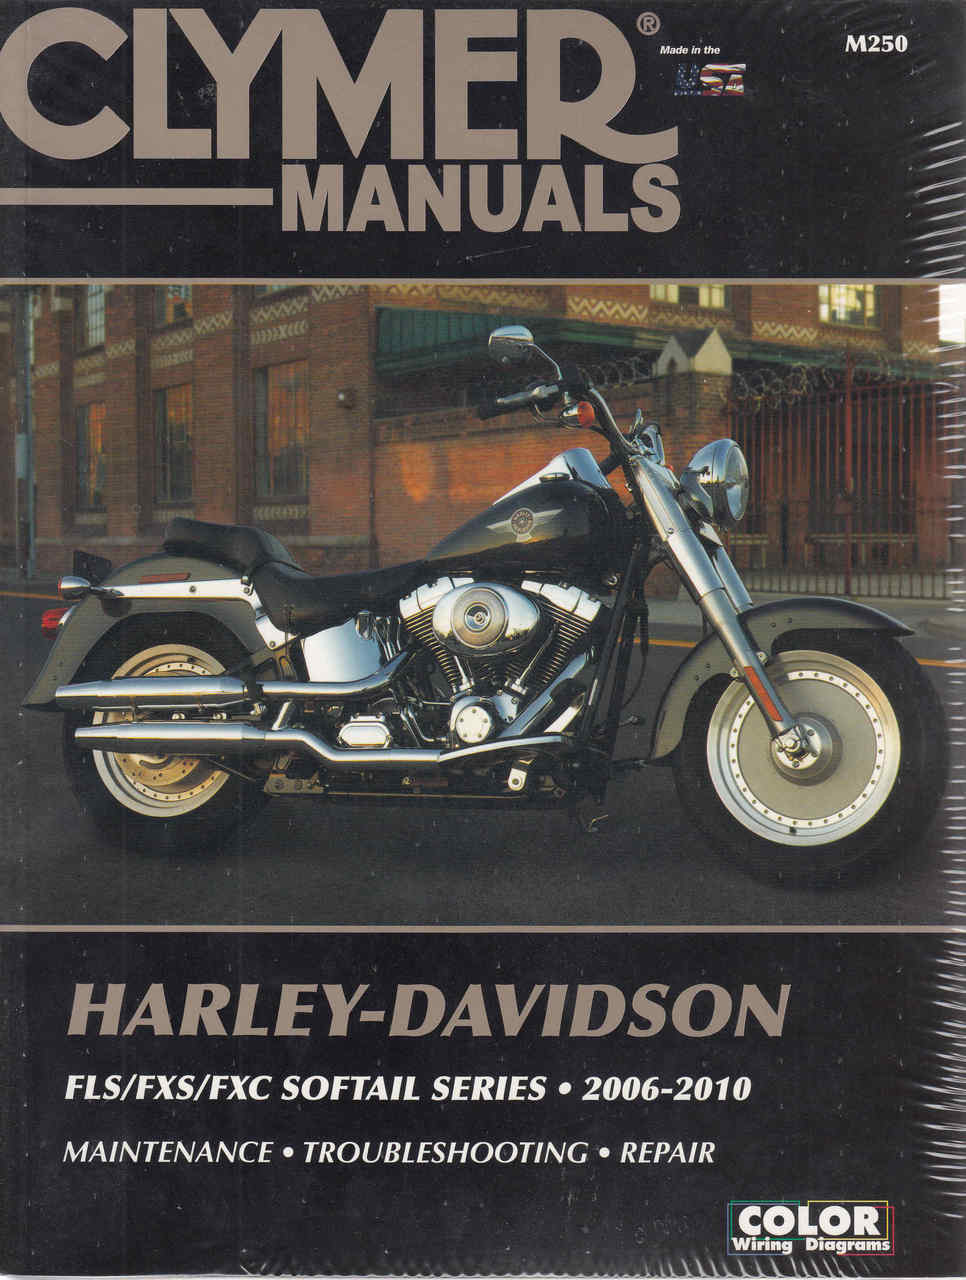 Harley Flstc Wiring Diagram on